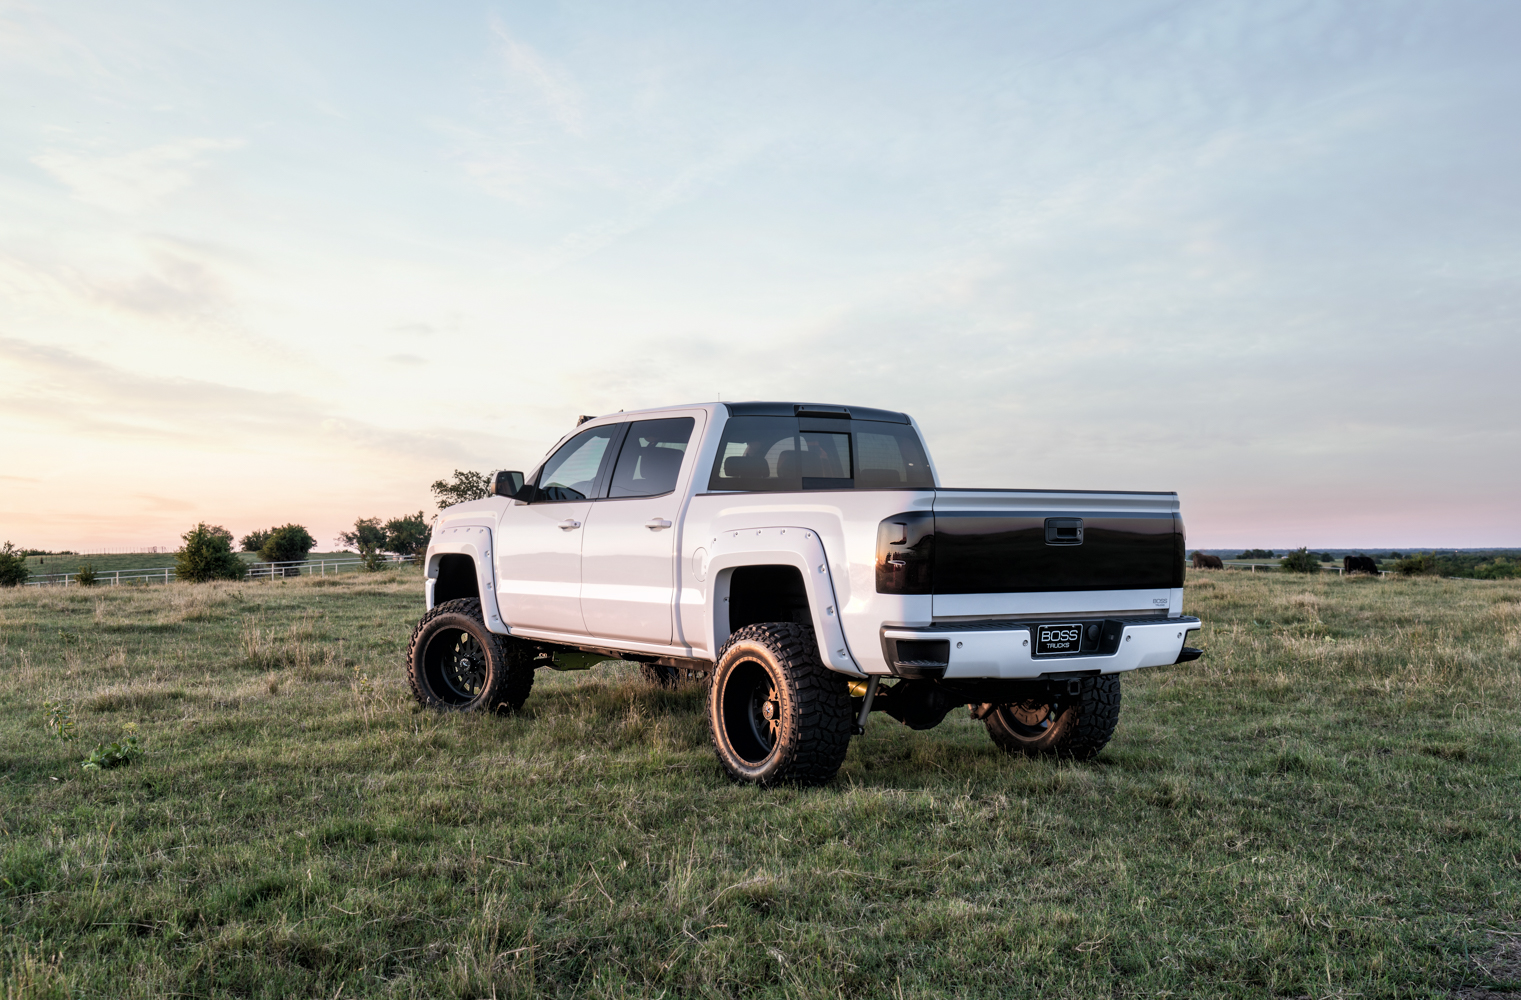 161 2014 gmc sierra 1500 white